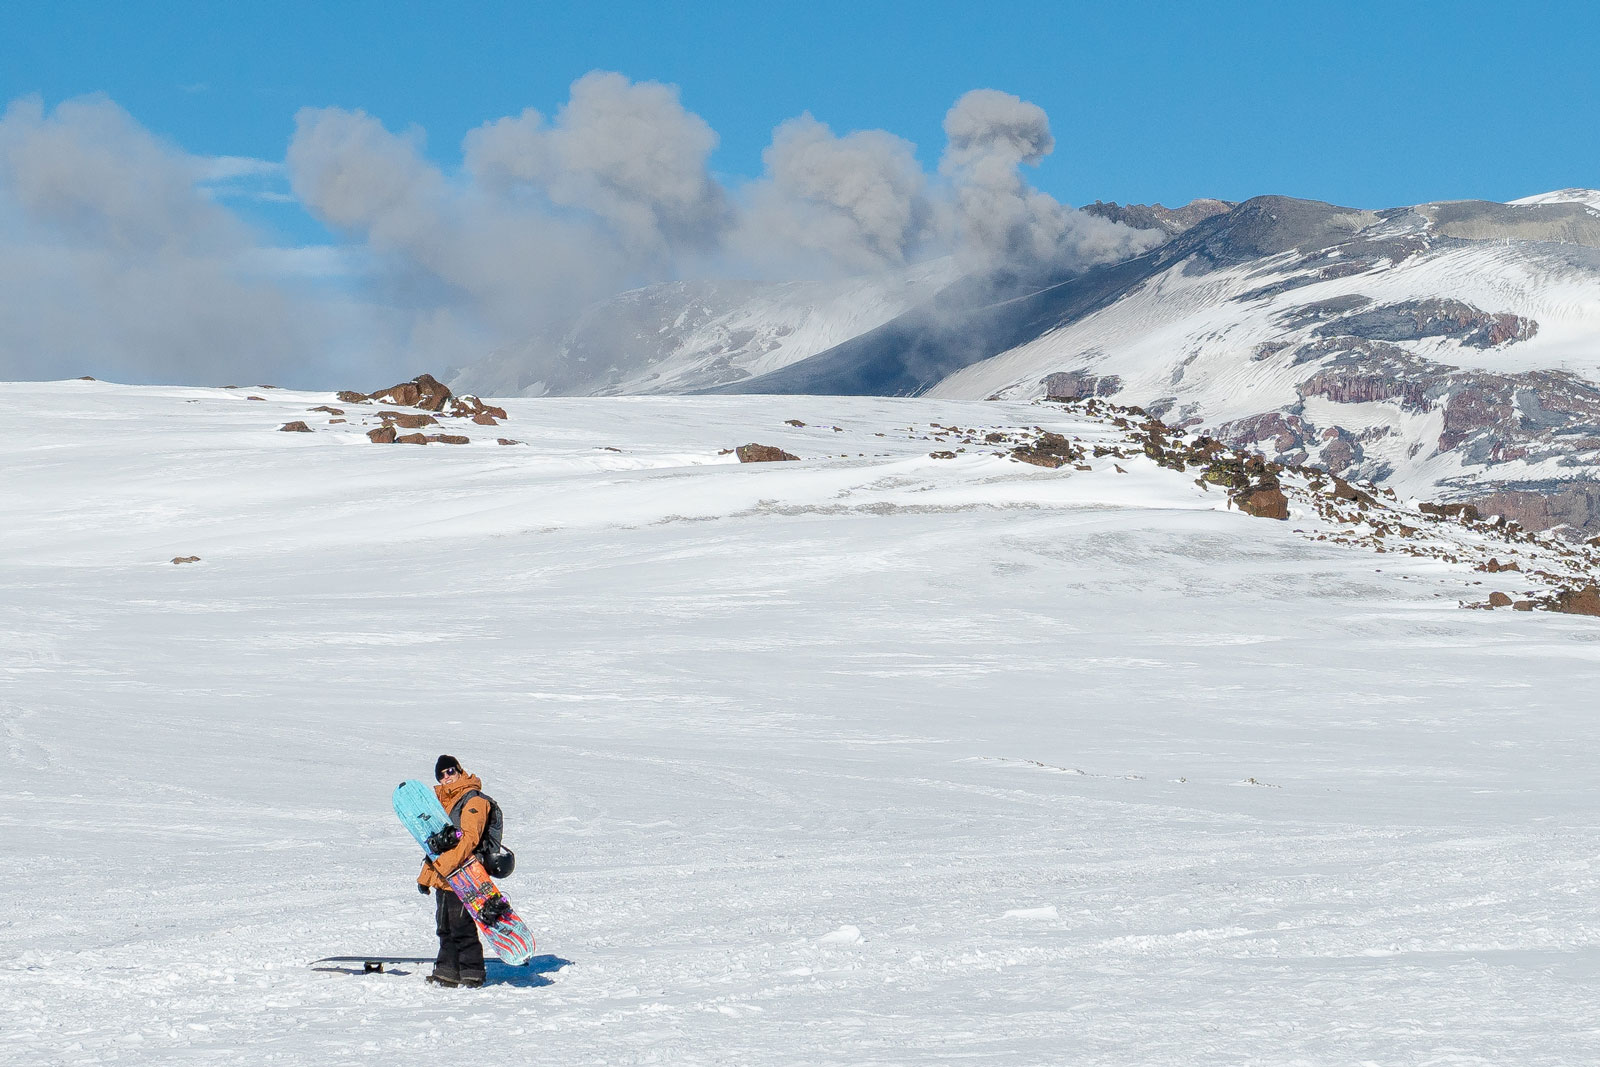 Reconsidering our decision to get closer to the volcano. Photo Courtesy: Ben Girardi - Adventure in Argentina